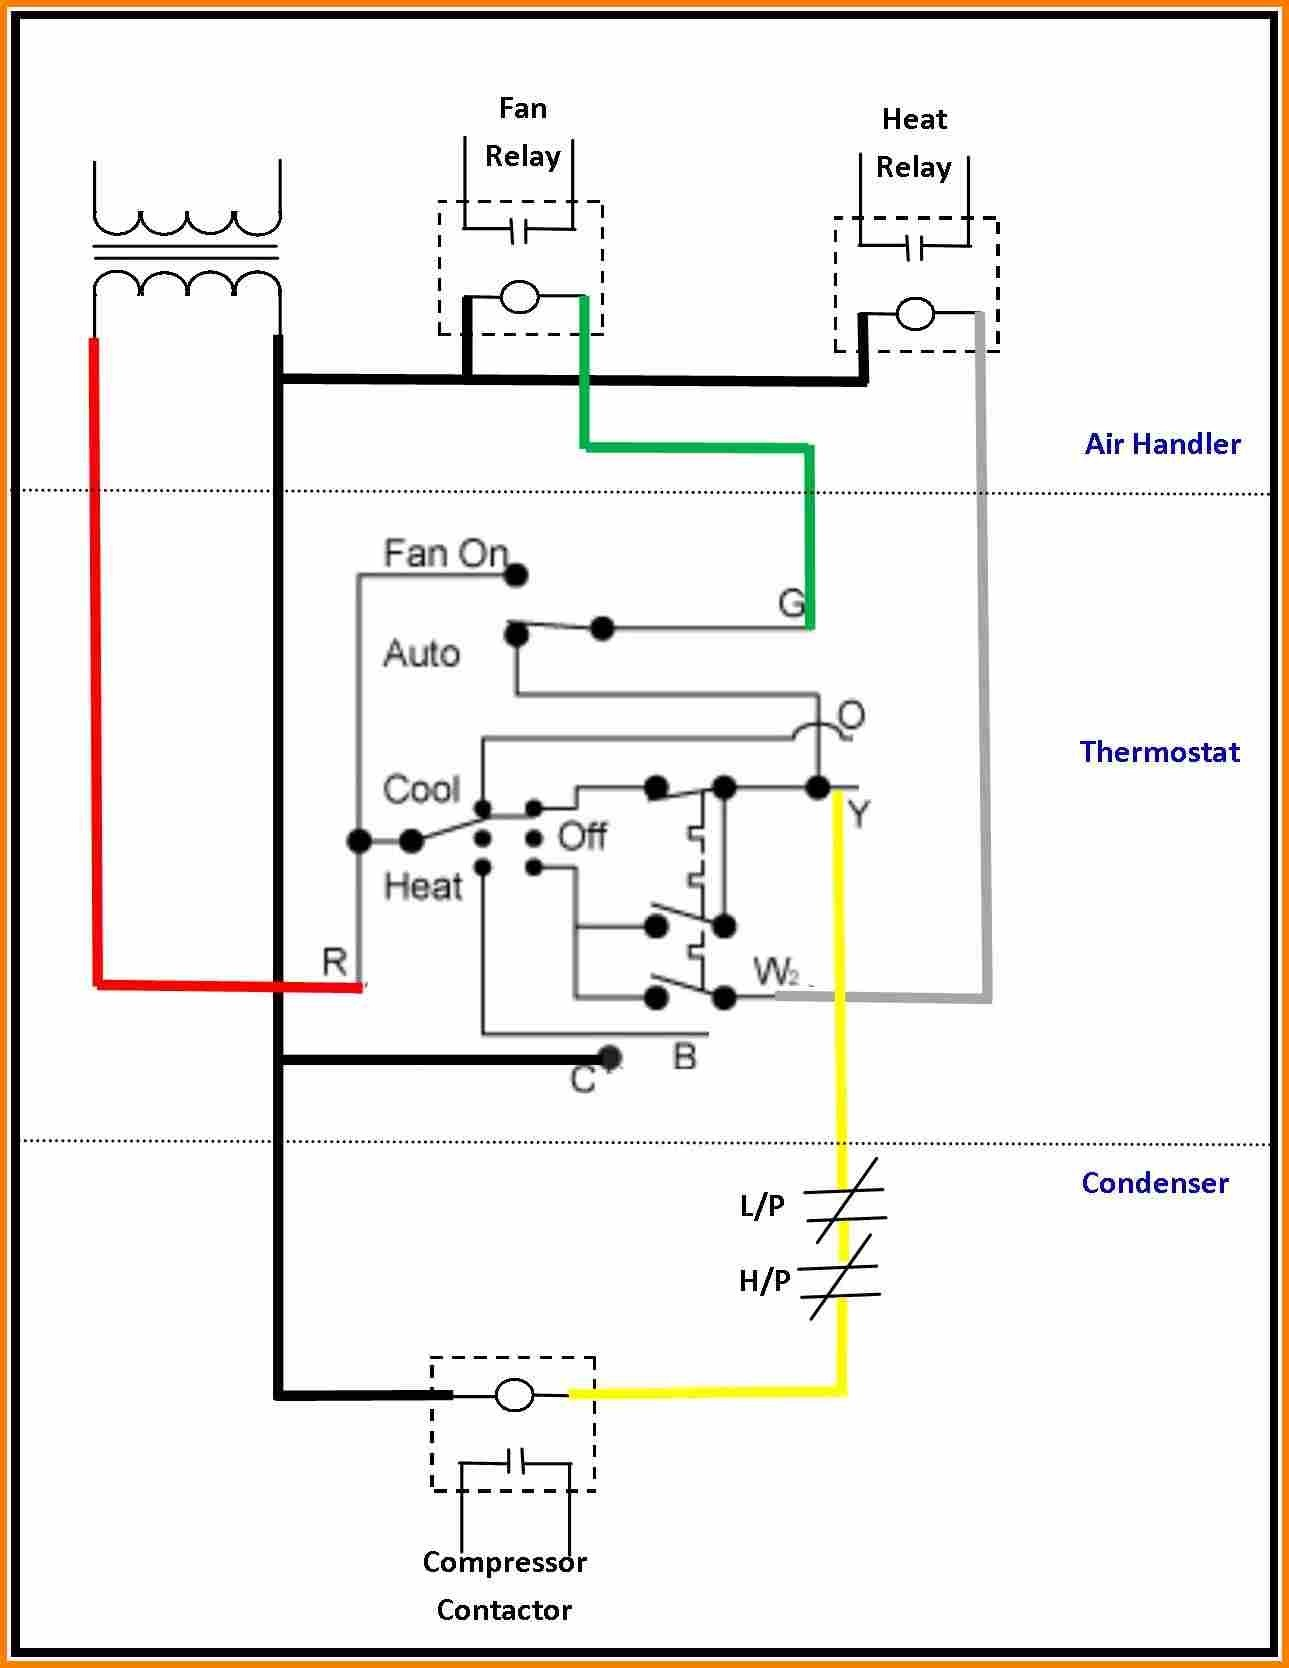 Heating and Cooling thermostat Wiring Diagram thermostat Wiring Diagram Wiring Diagrams Of Heating and Cooling thermostat Wiring Diagram